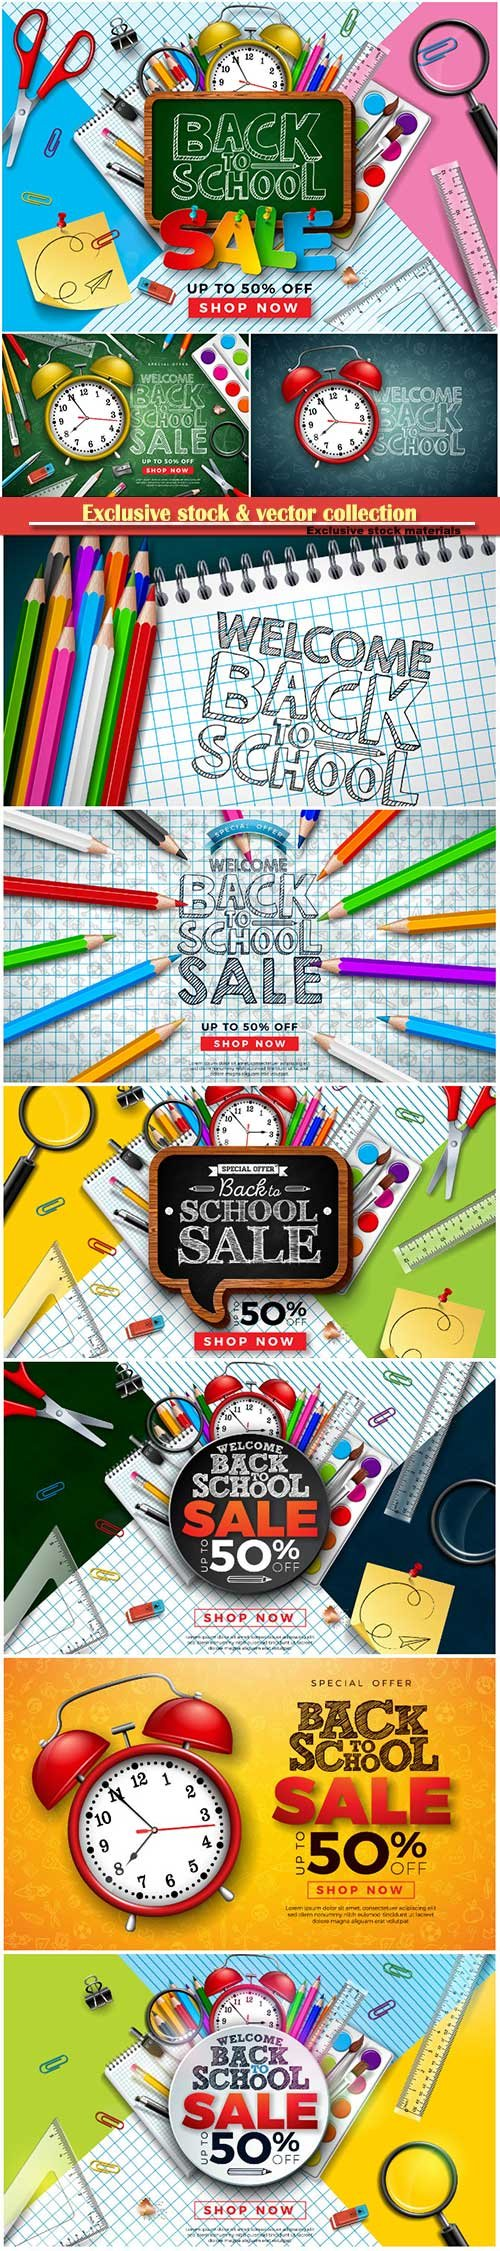 Back to school design vector, education concept illustration # 4